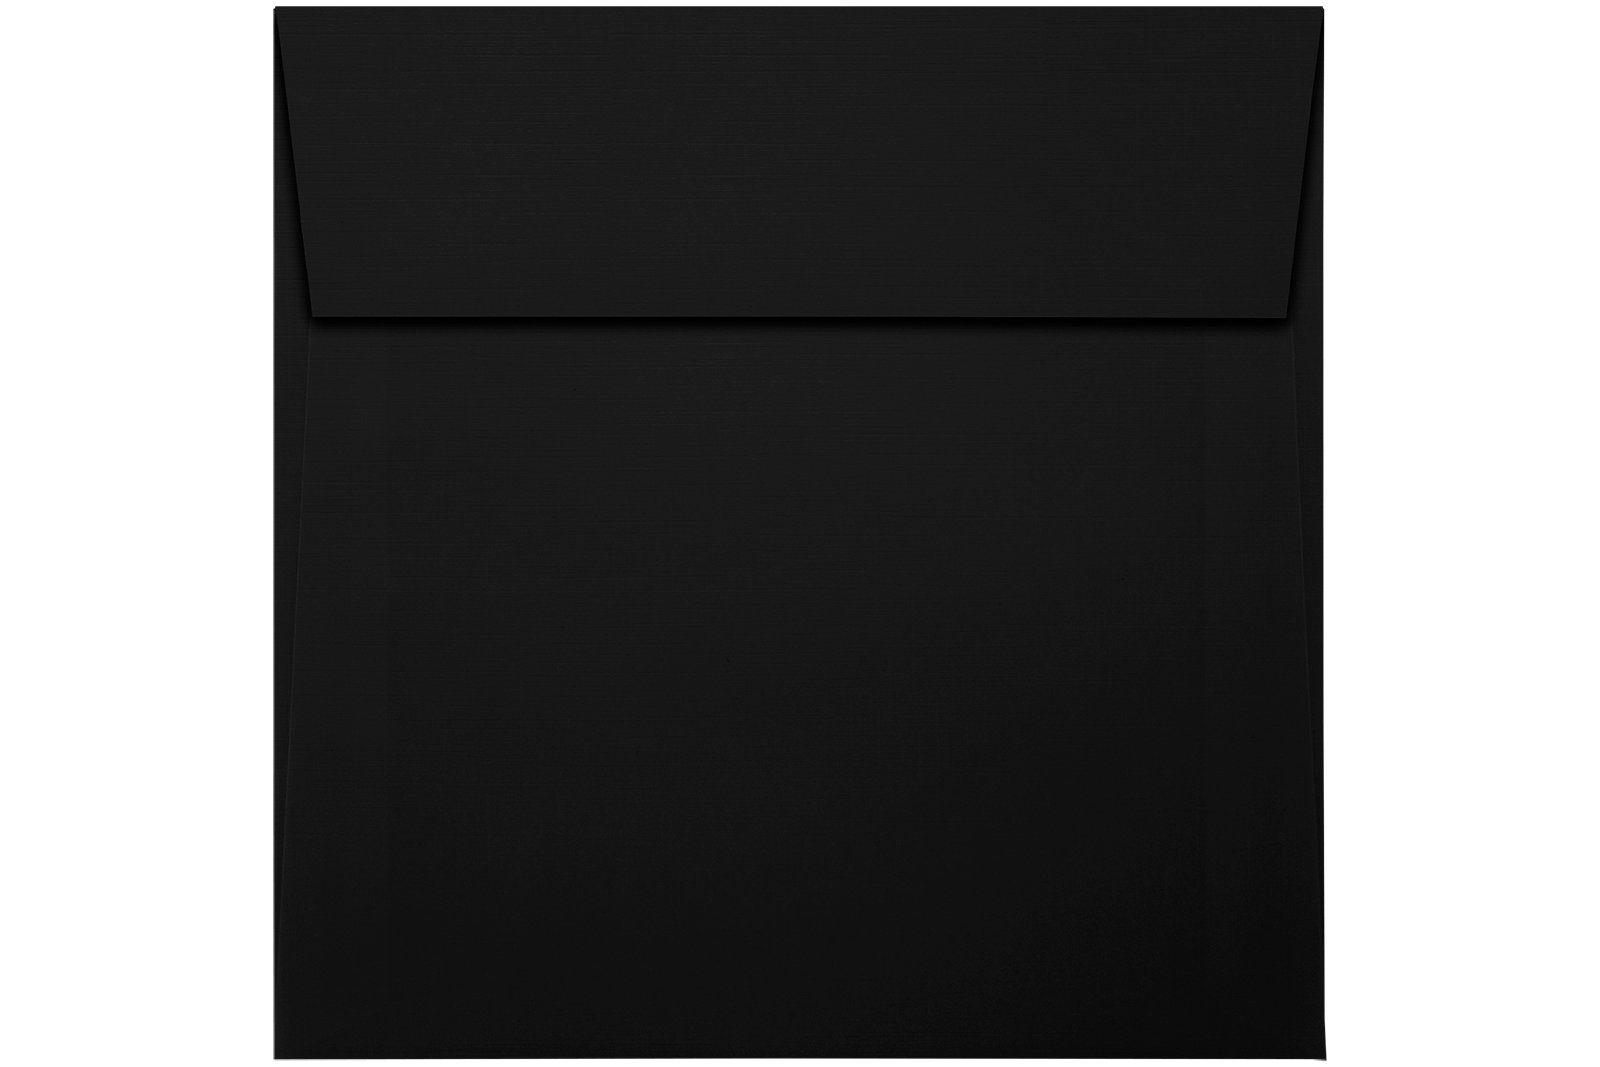 5 3/4 x 5 3/4 Square Envelopes w/Peel & Press - Black Linen (50 Qty.) | Perfect For Thank You Notes, RSVPs, Greeting Cards, Weddings or any Announcement | 80lb Text Paper | 8520-BLI-50